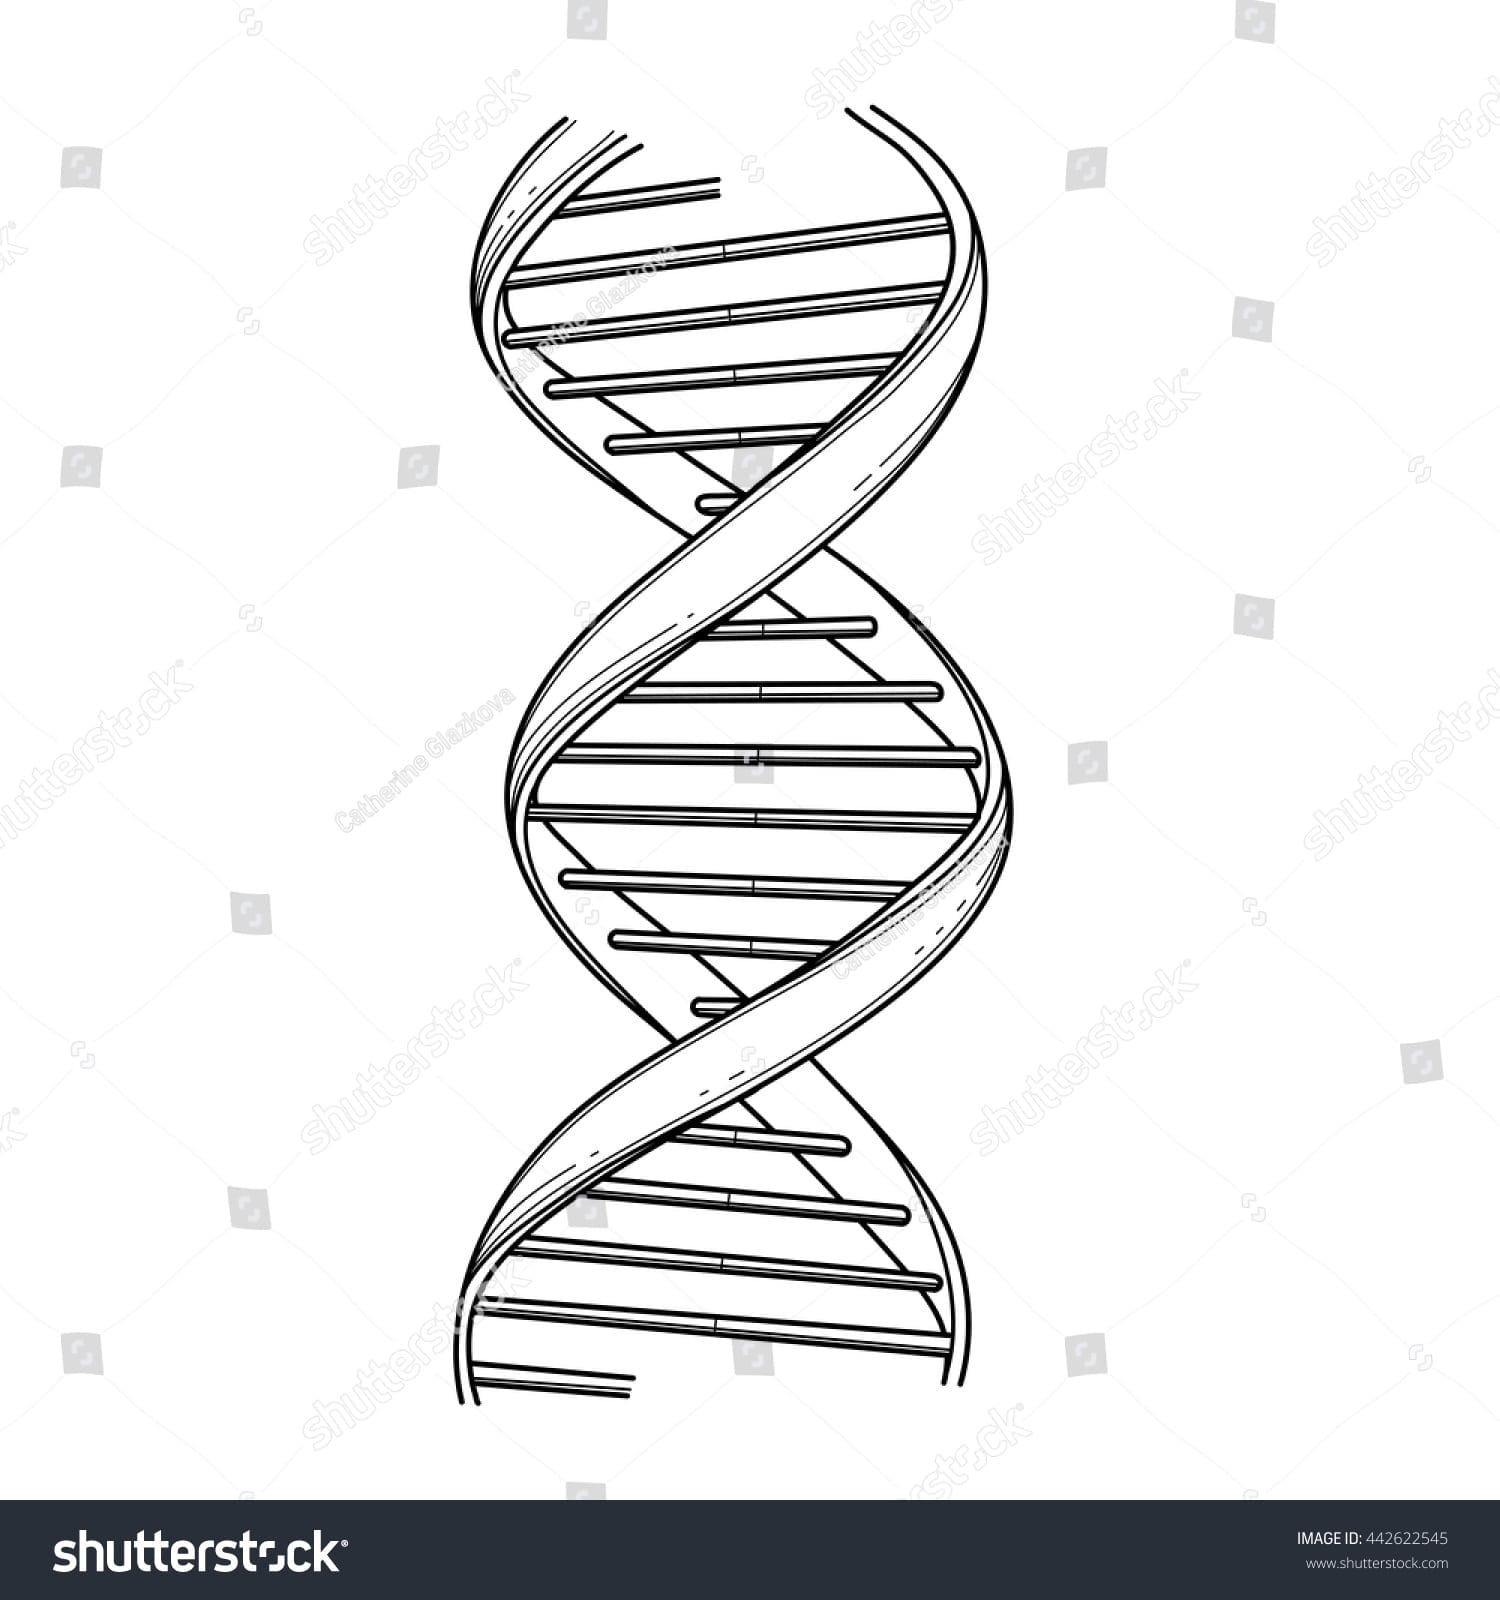 Common Worksheets Dna Replication Coloring Worksheet And